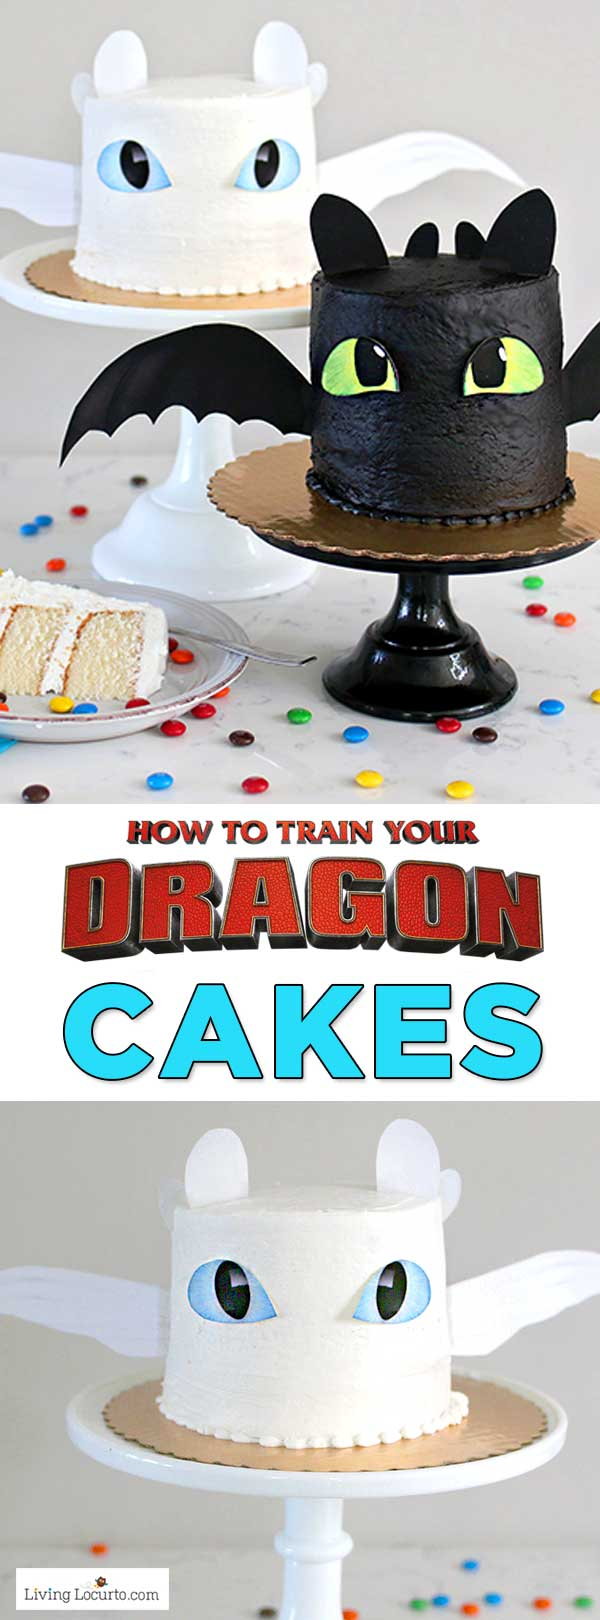 How to Train Your Dragon White Cake Recipe